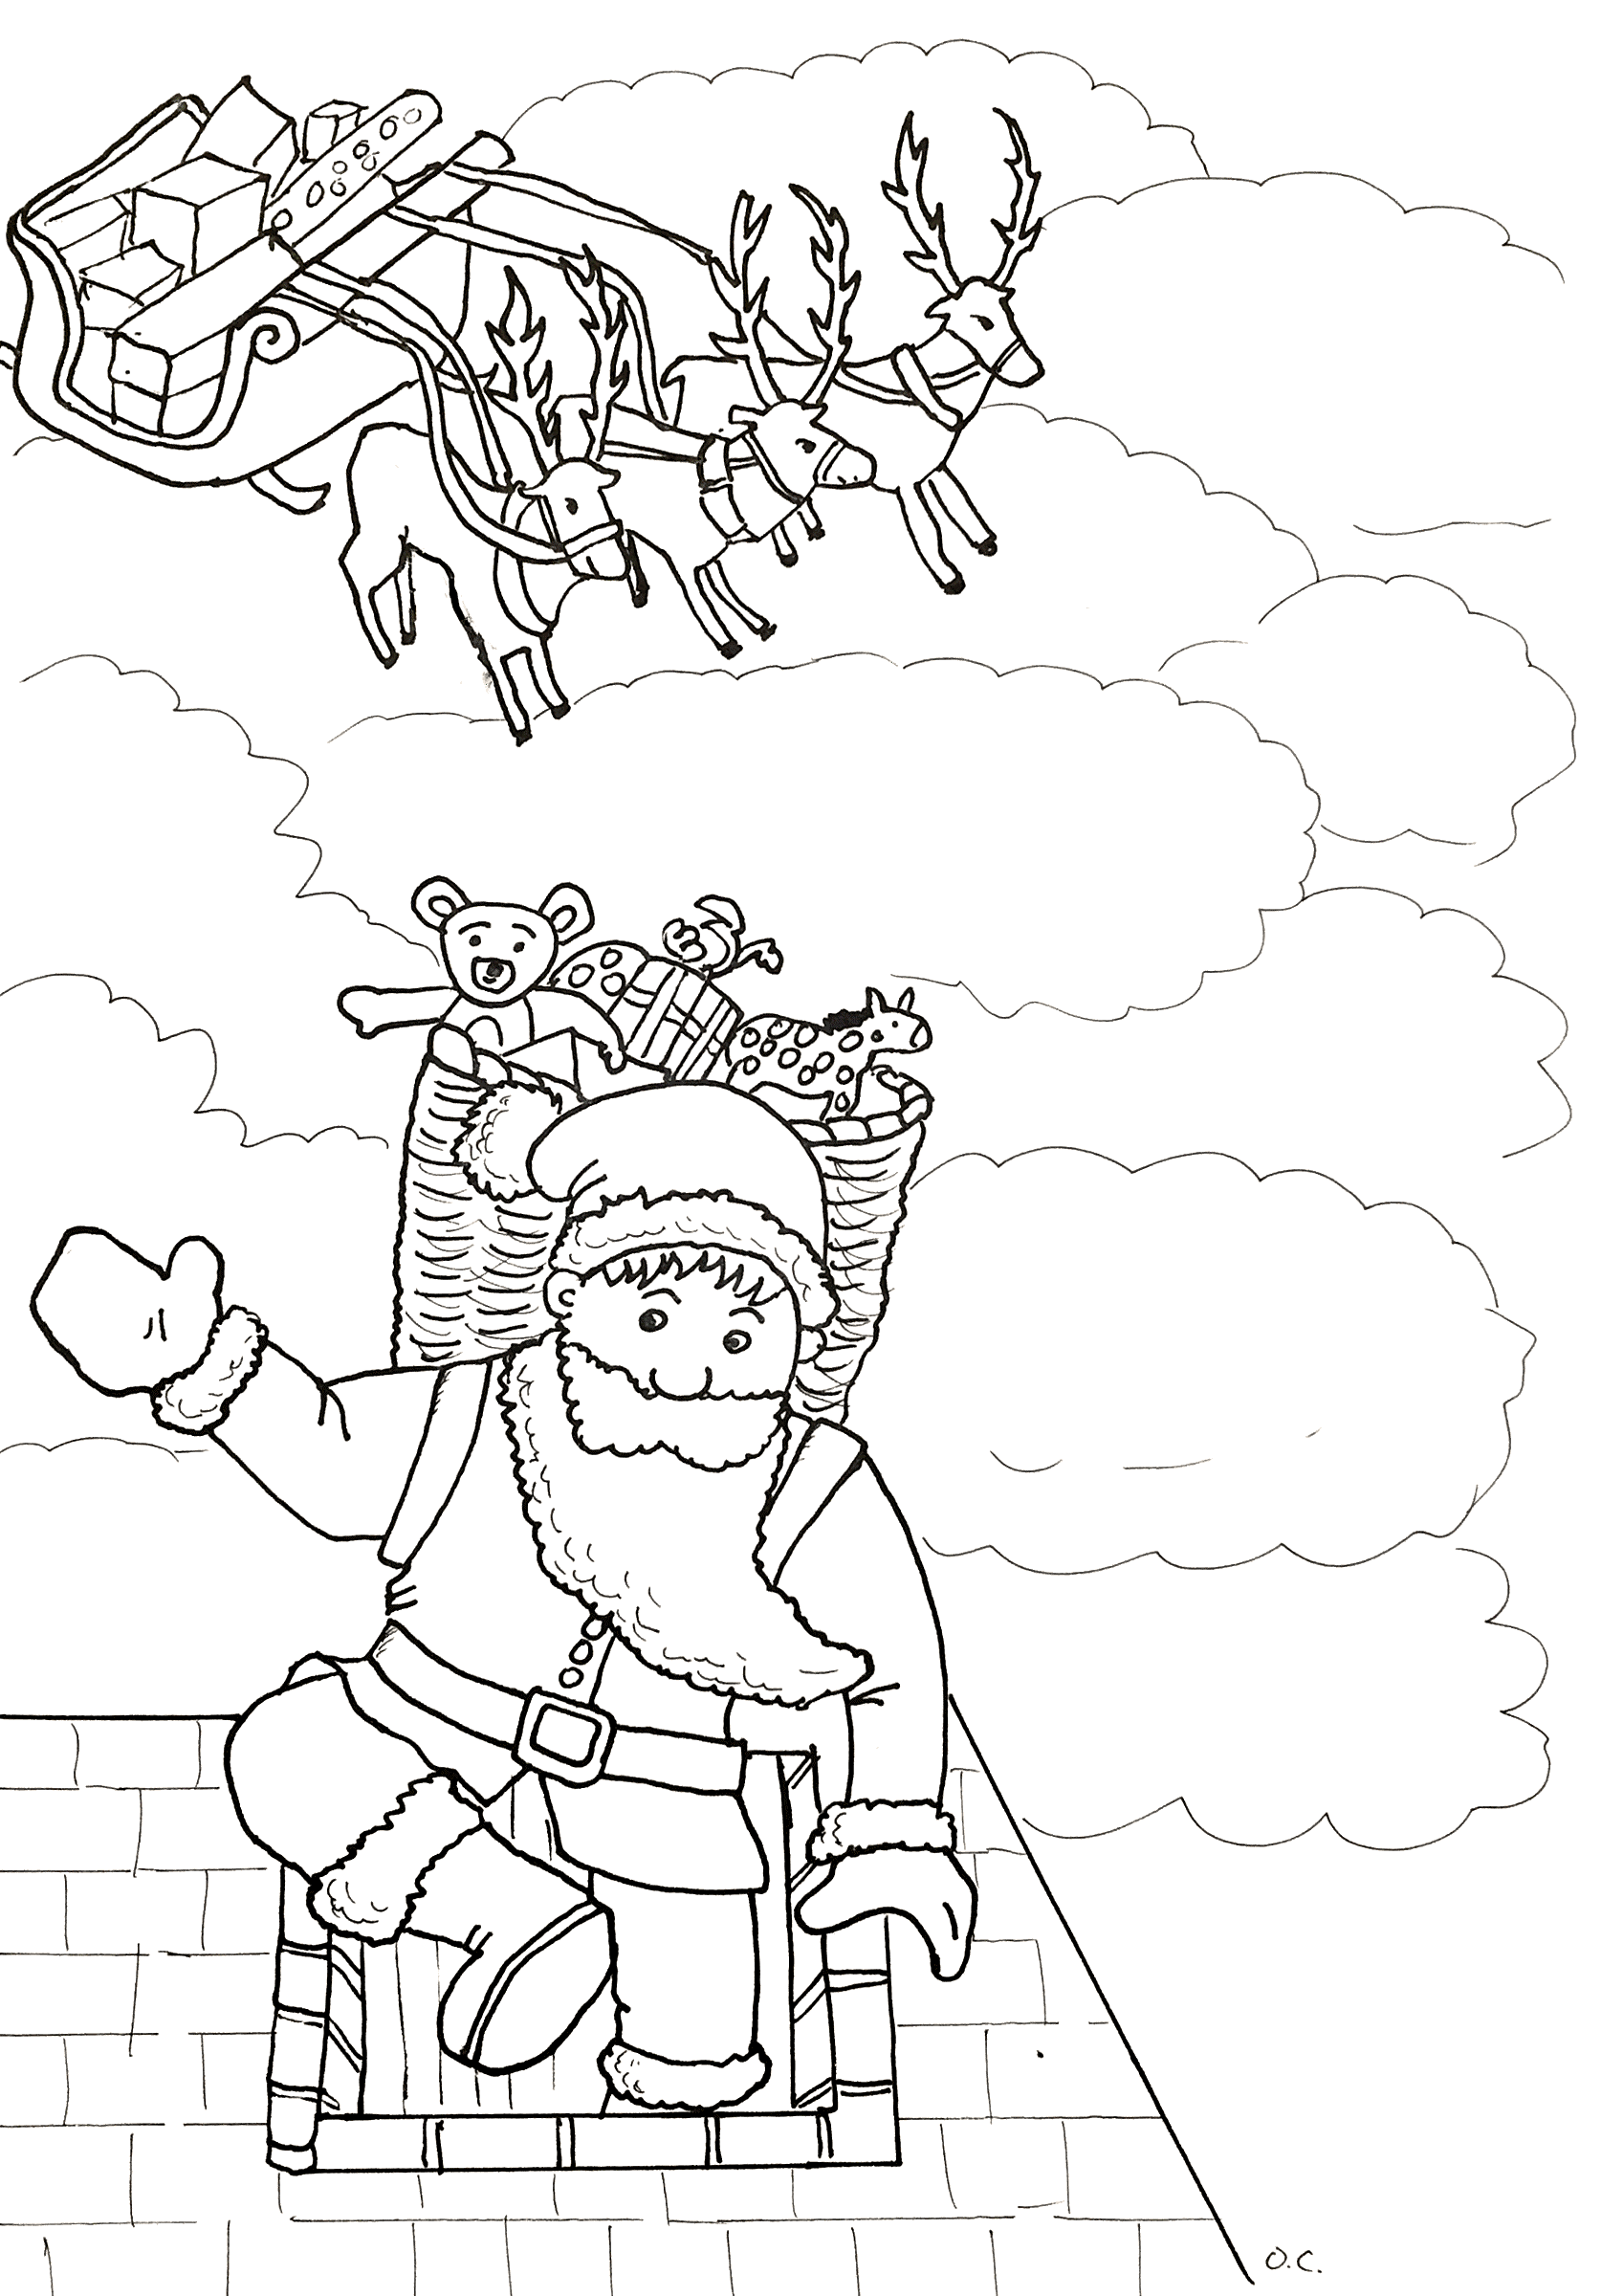 Santa Claus coloring page with few details for kids